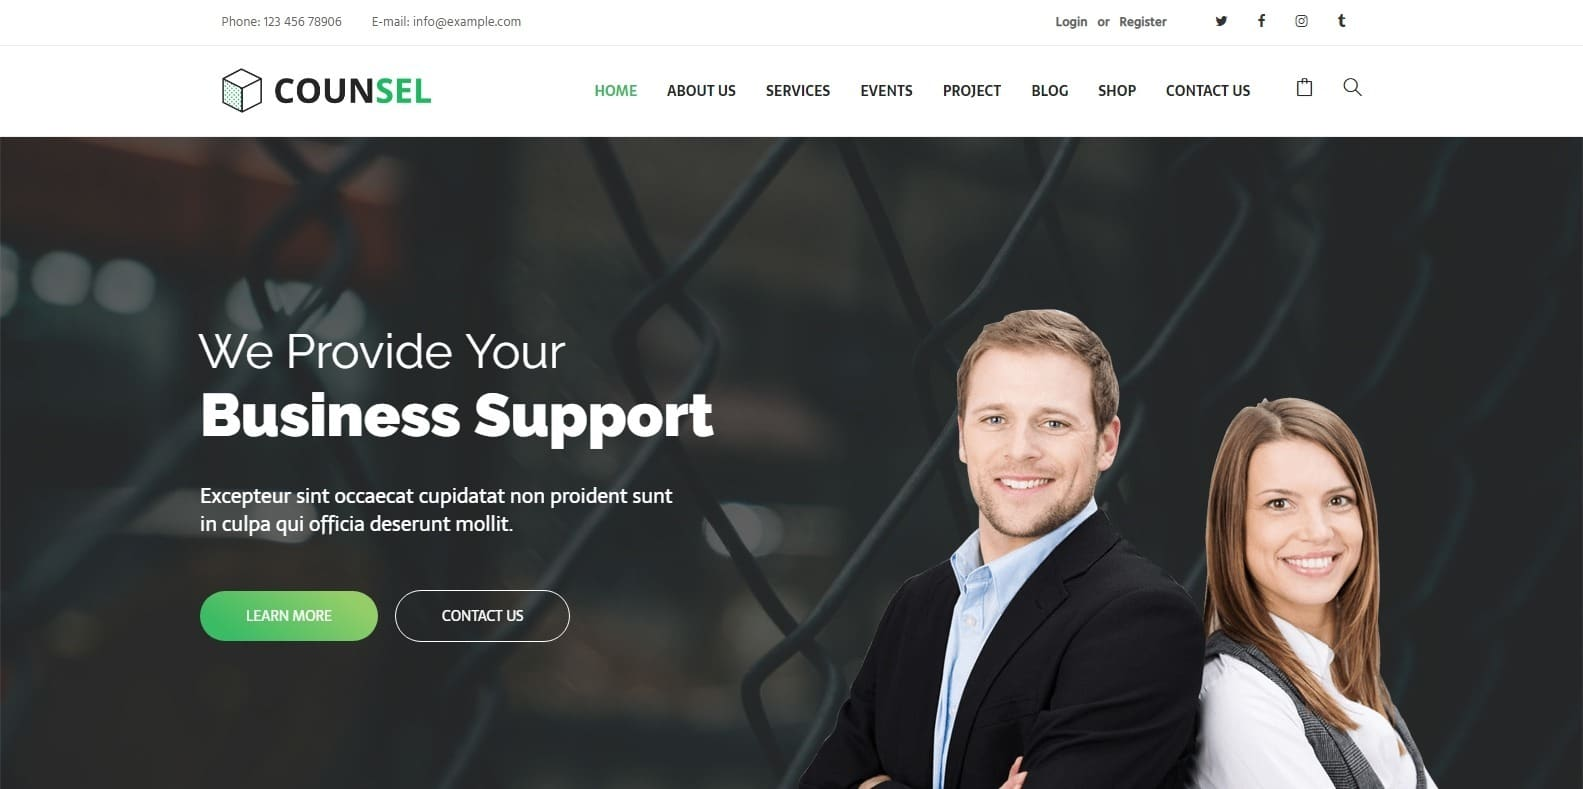 counsel-consulting-website-template